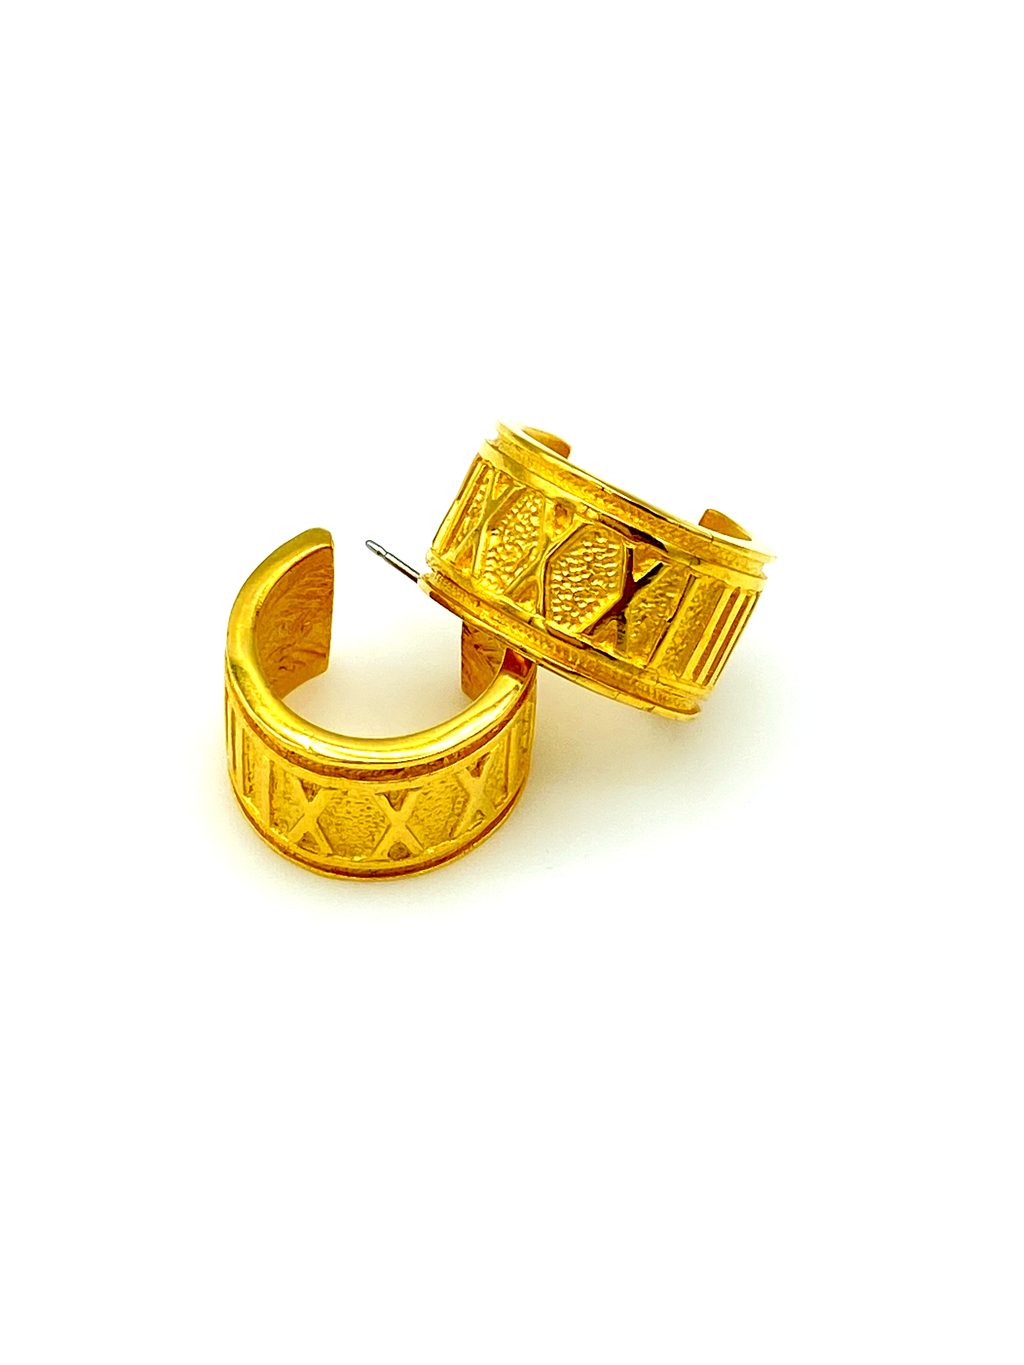 Wide Roman Numeral Hoop Gold Pierced Vintage Earrings-Sustainable Fashion with Vintage Style-Trending Designer Fashion-24 Wishes